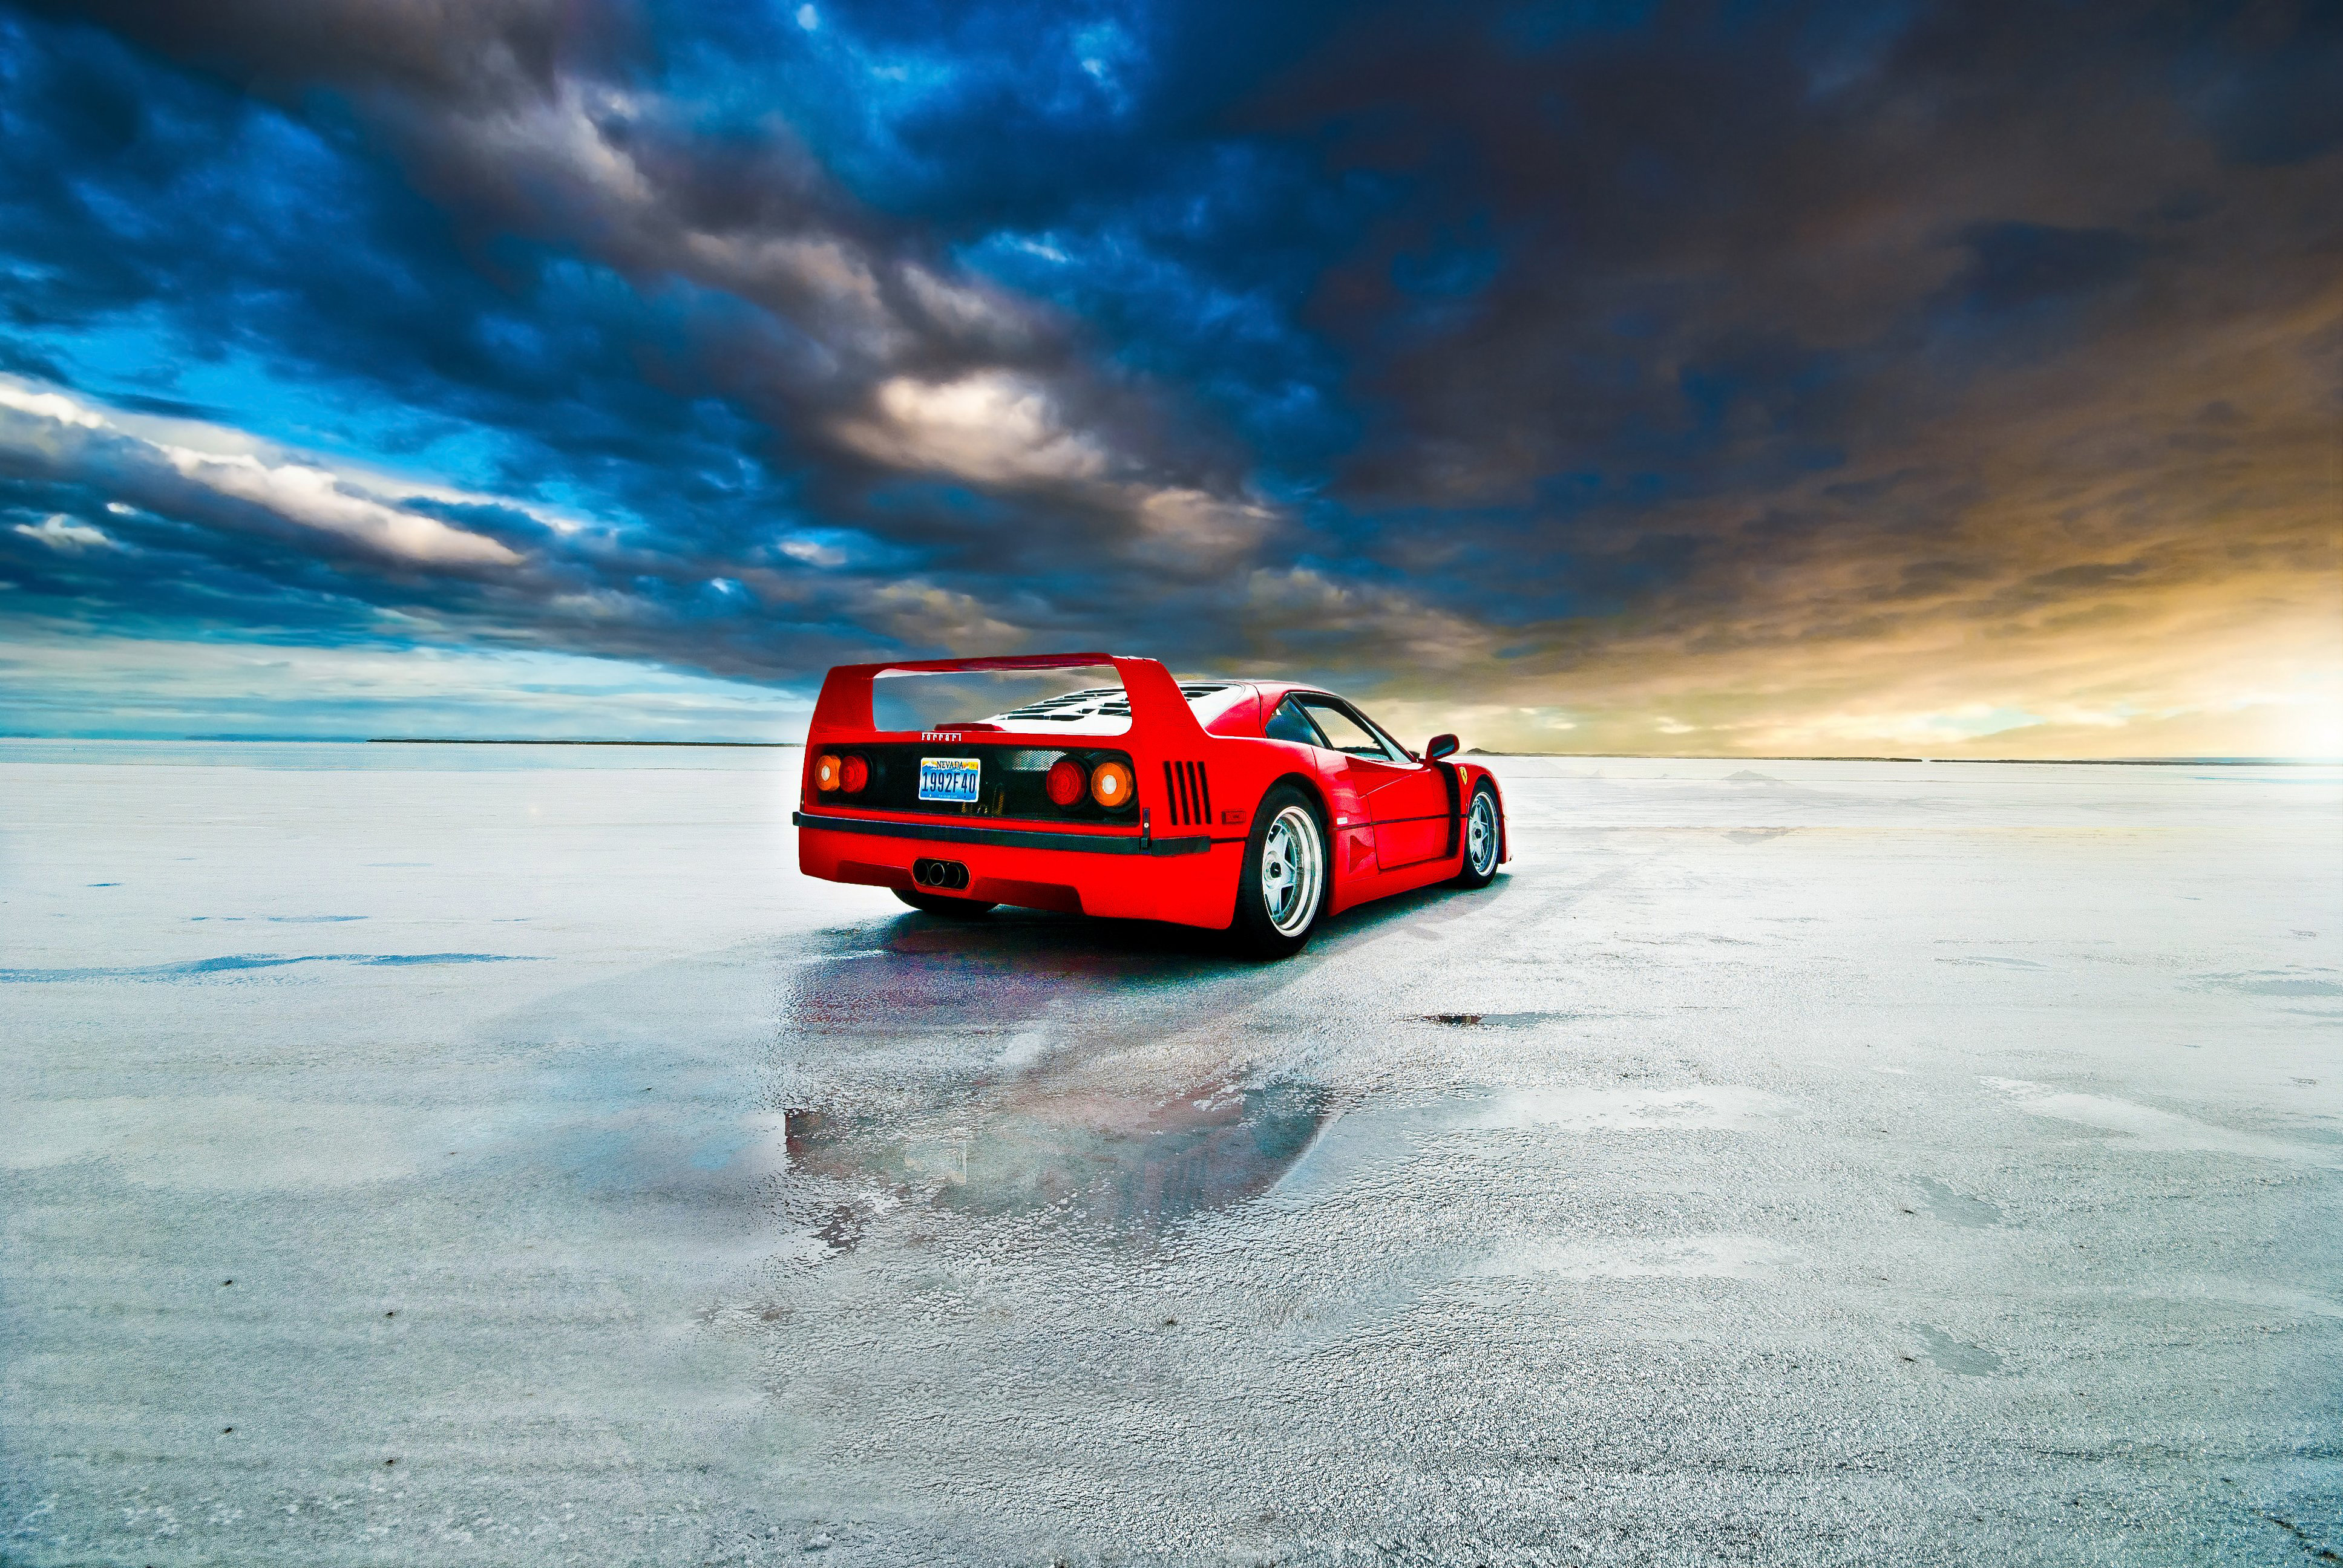 Ferrari F40, HD Cars, 4k Wallpapers, Images, Backgrounds